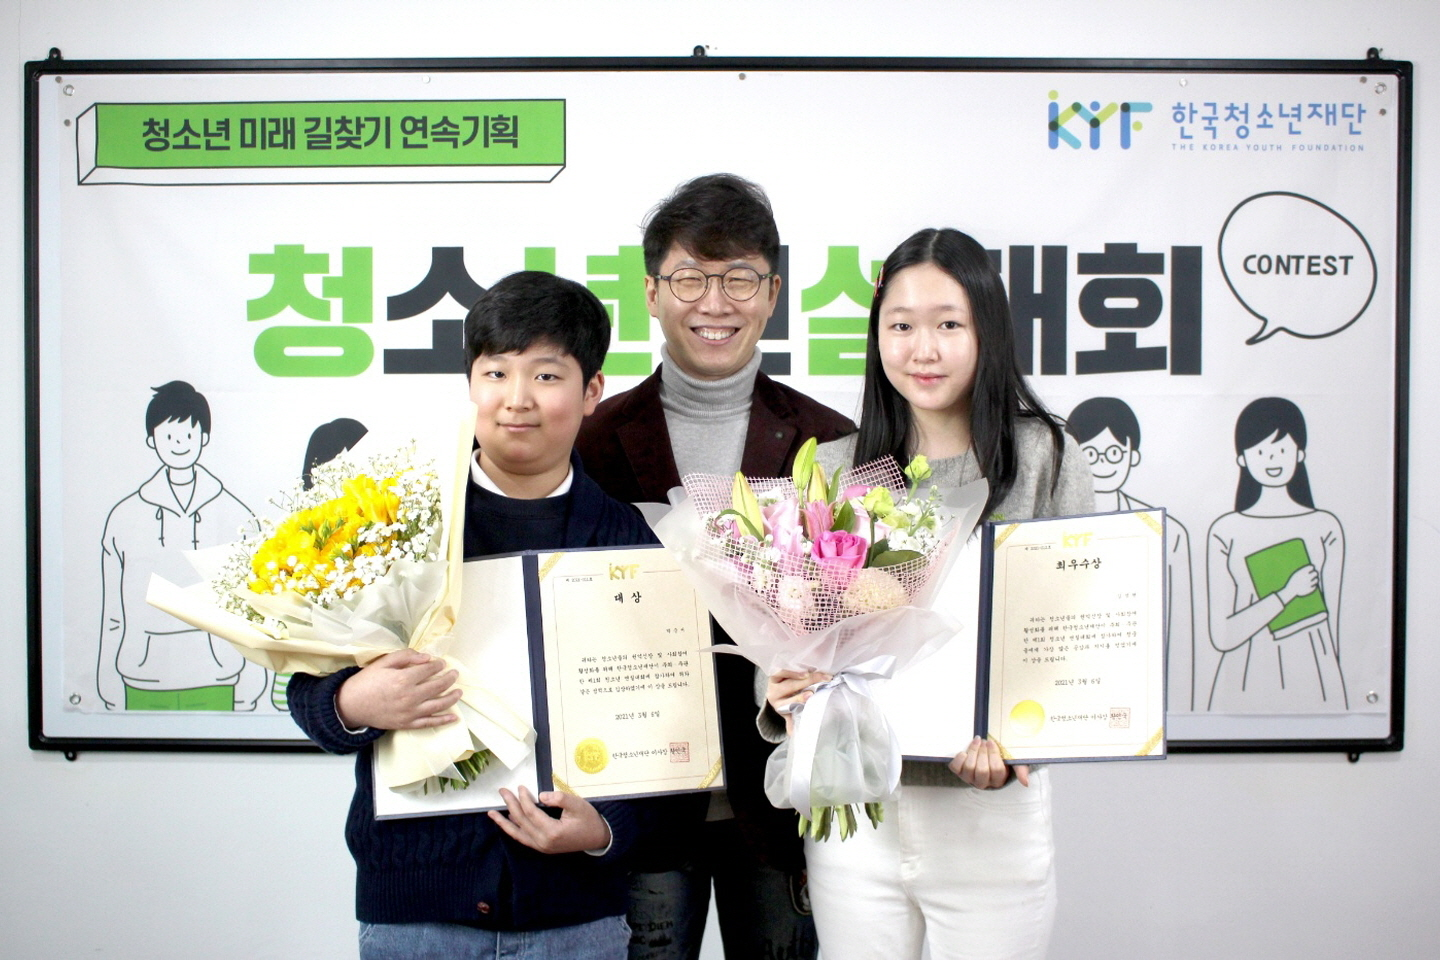 http://www.dreamyouth.or.kr/_images/notice/notice_20210308_06.jpg